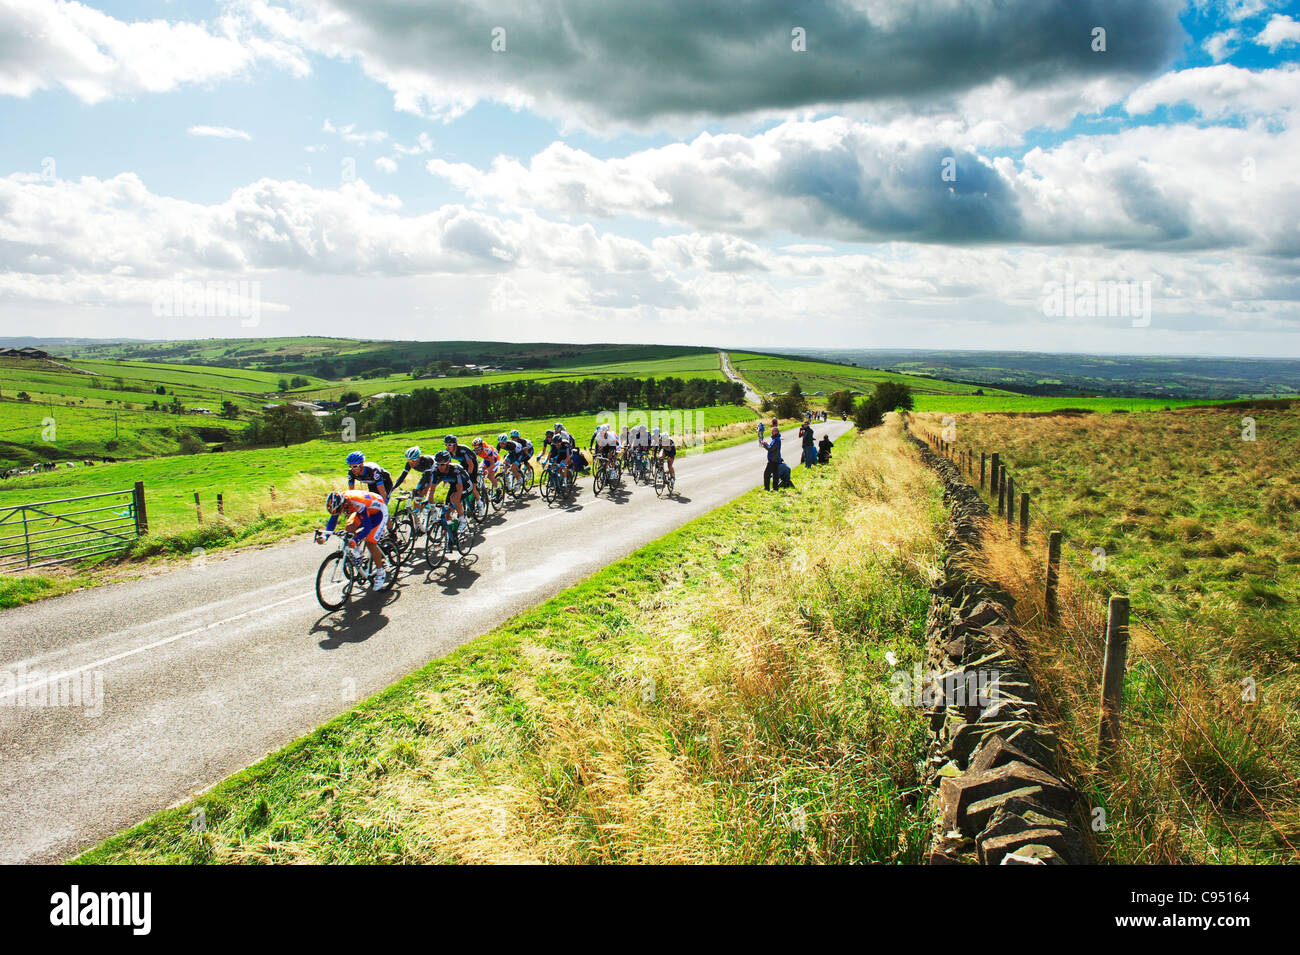 The 2011 Tour of Britain roles across the Staffordshire moorlands during Stage 3 of the race - Stock Image